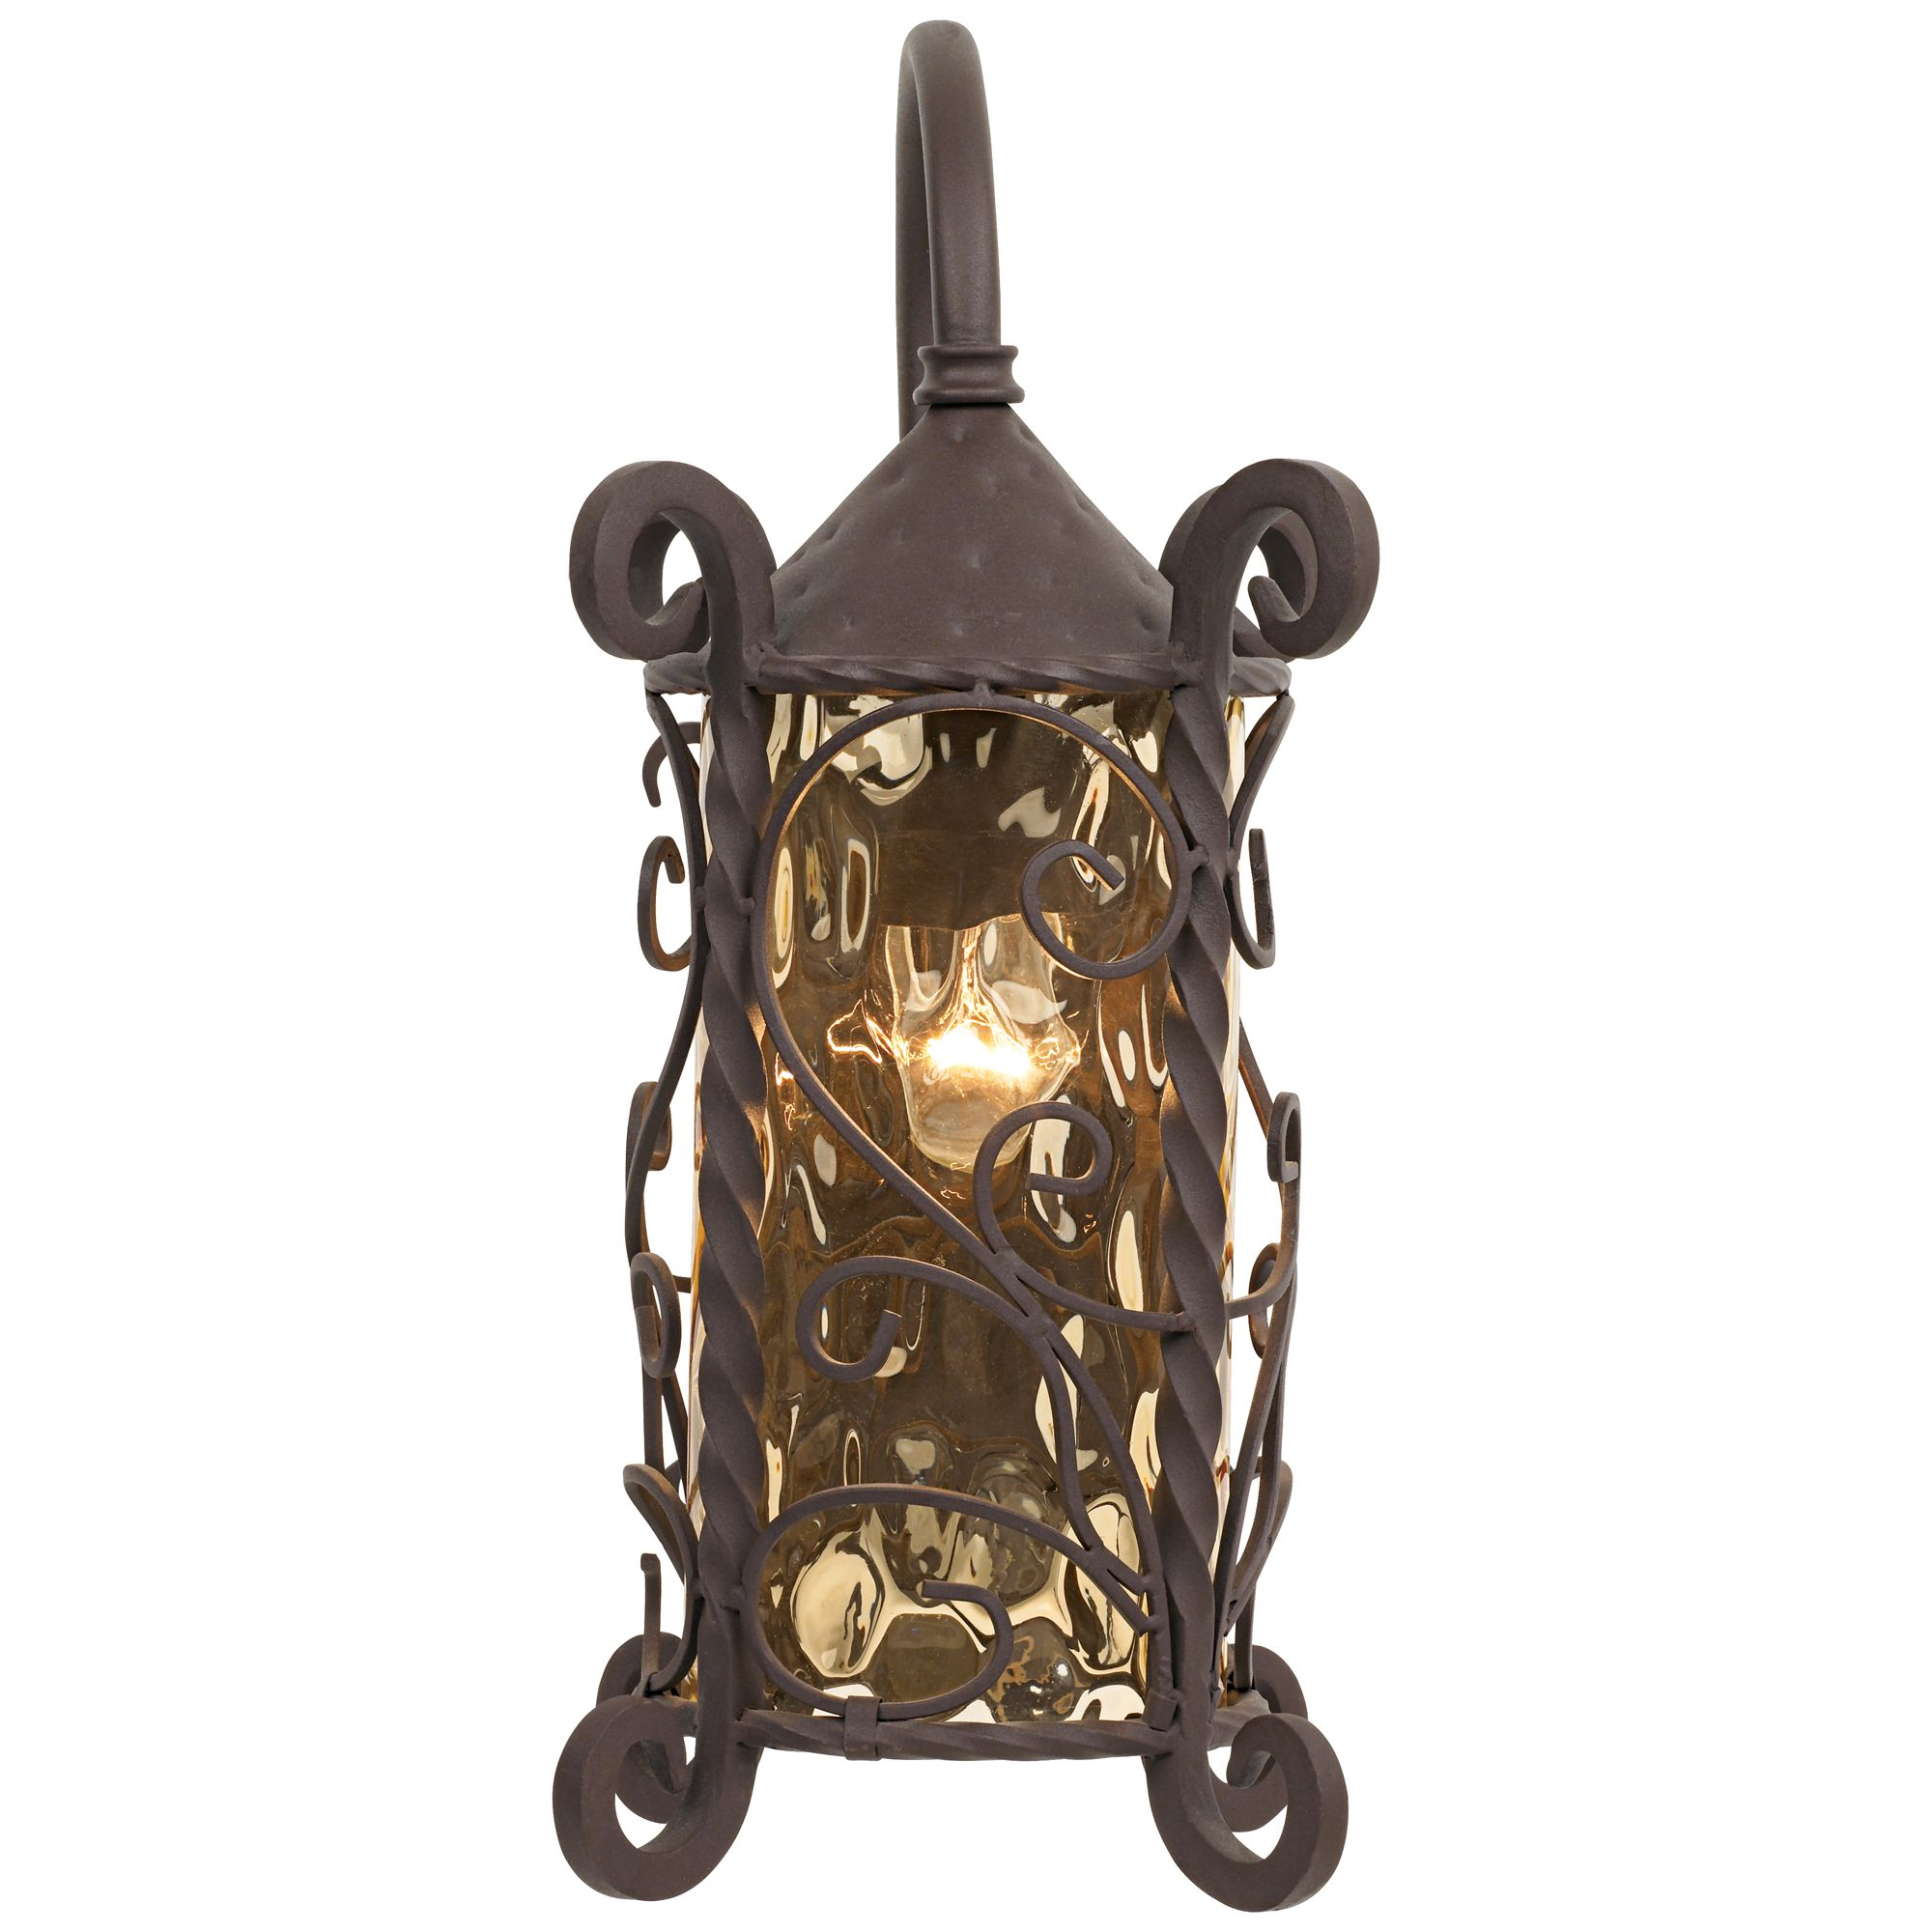 john timberland rustic outdoor wall light fixture dark walnut iron twists 18 1 2 champagne hammered glass for exterior house deck